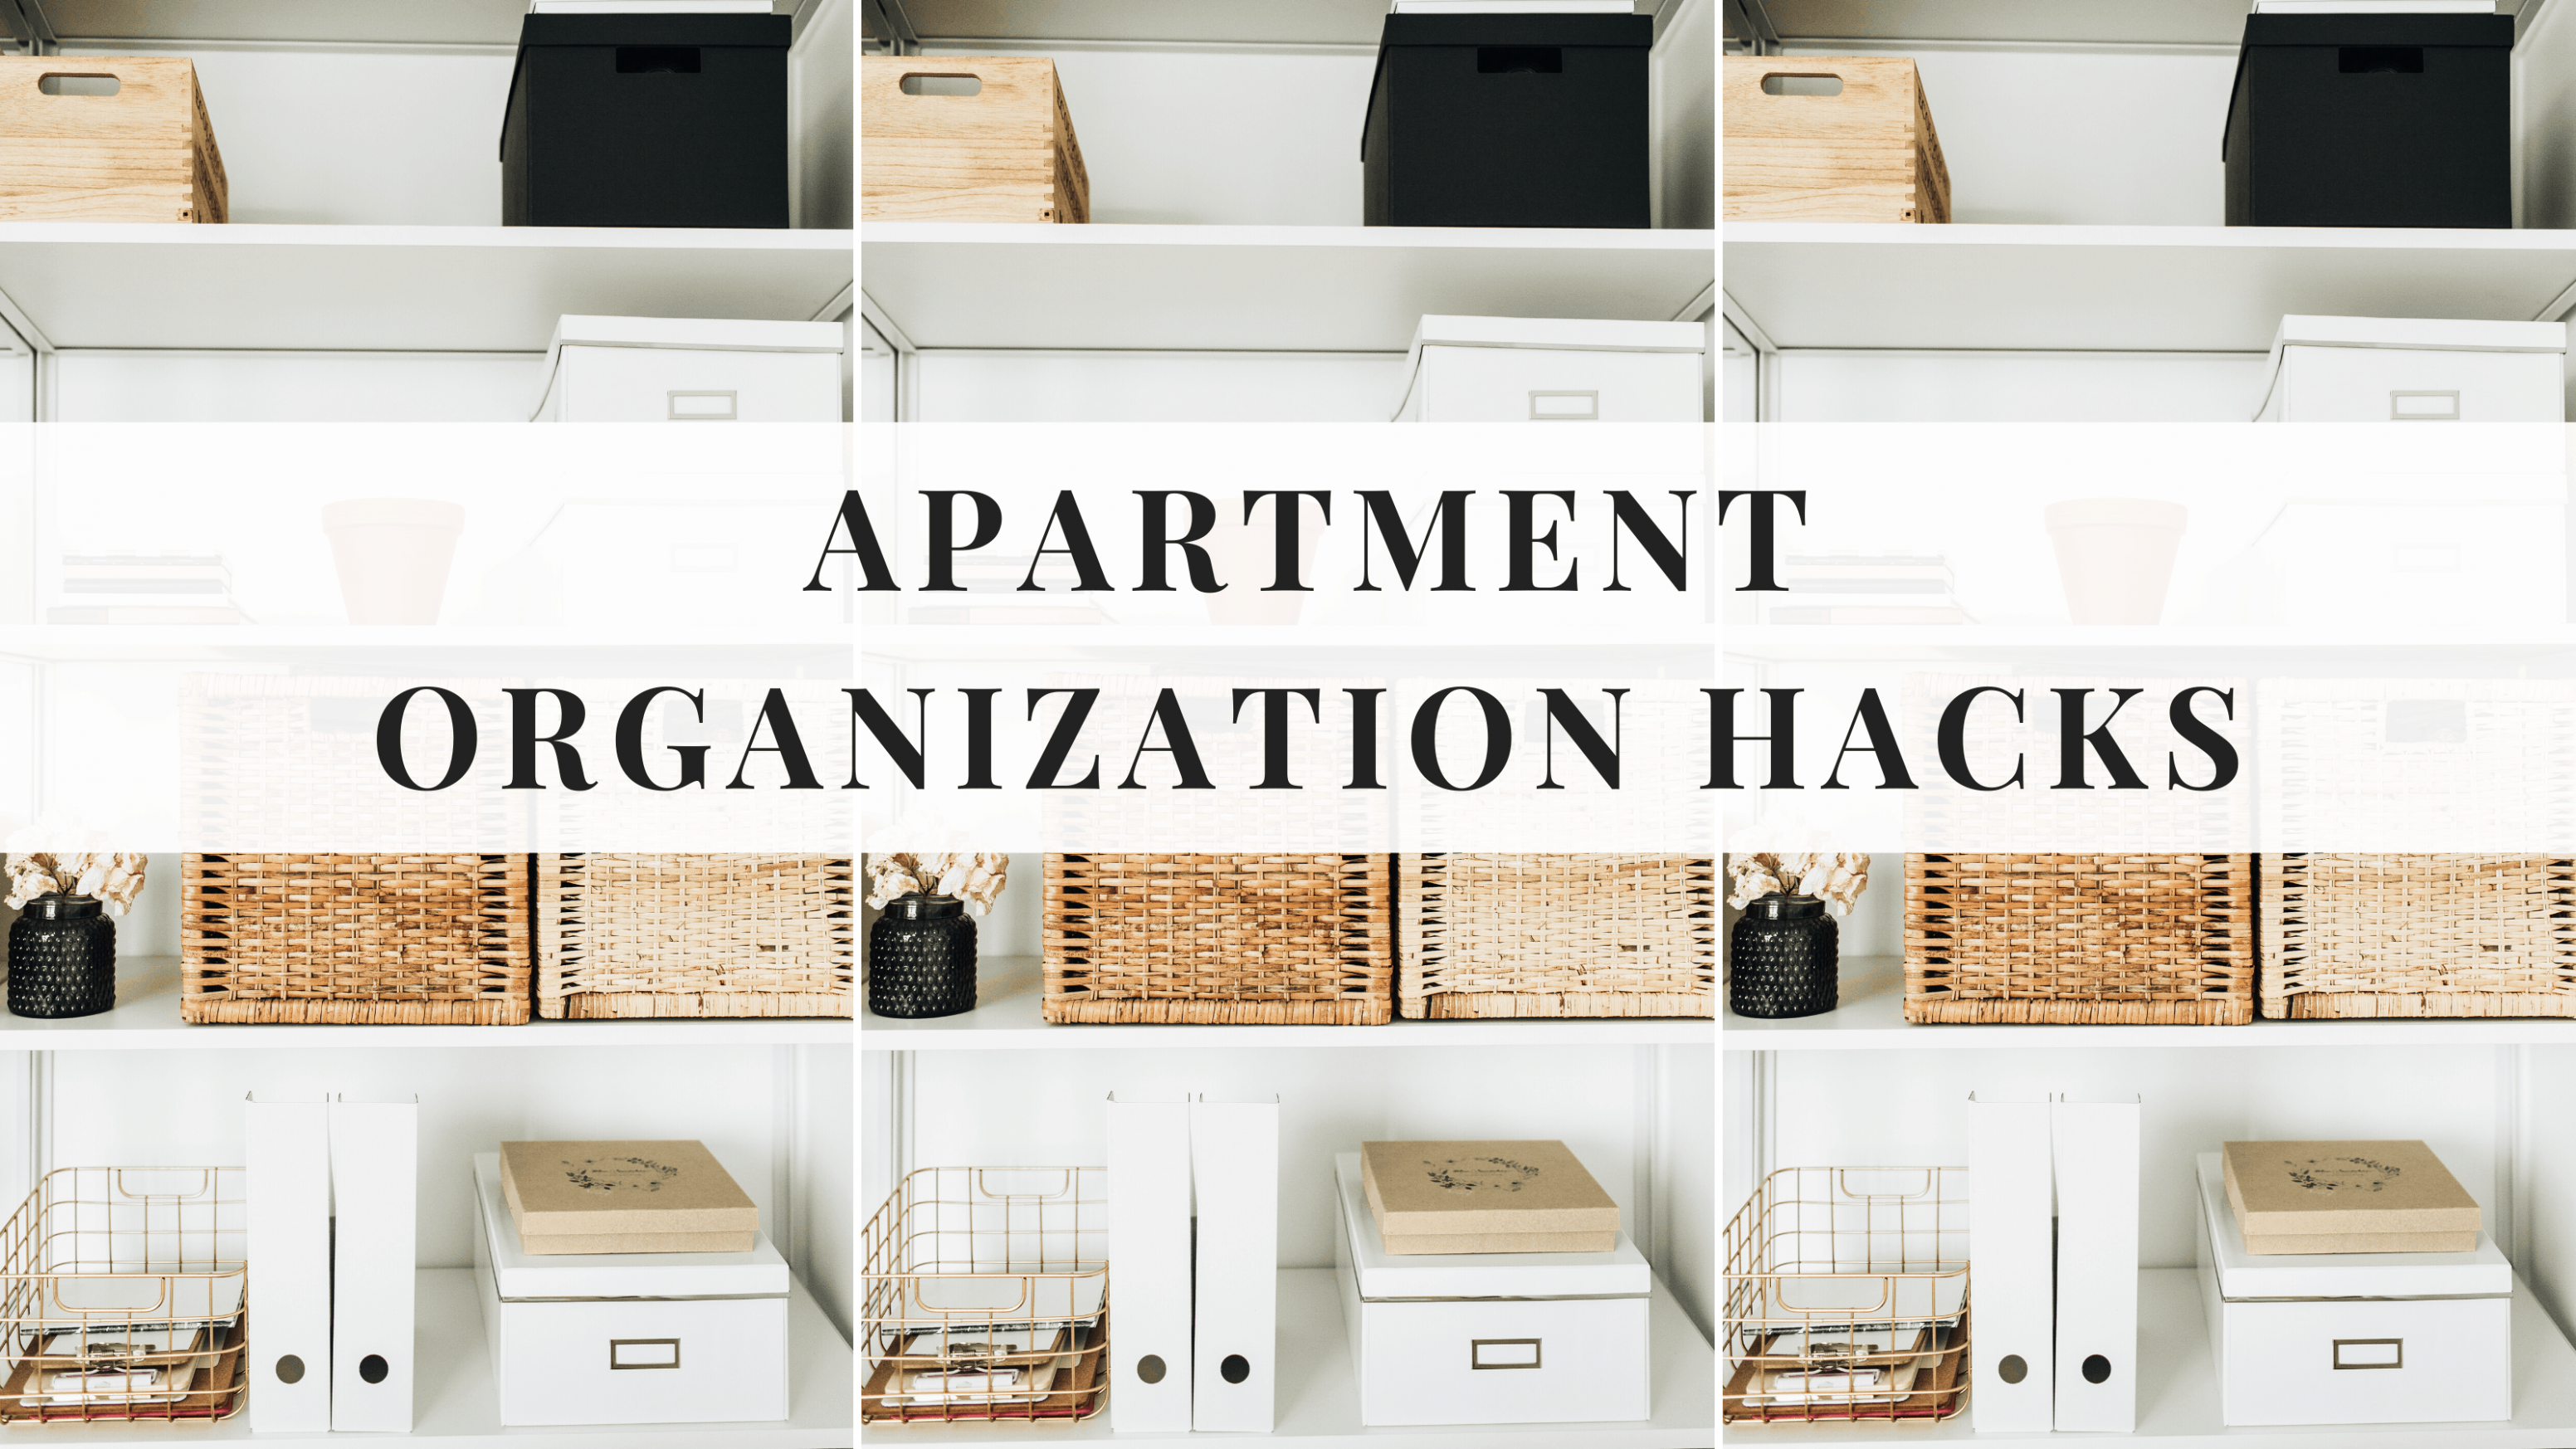 11 Seriously Genius Apartment Organization Hacks You Should Know  - Apartment Design Hacks